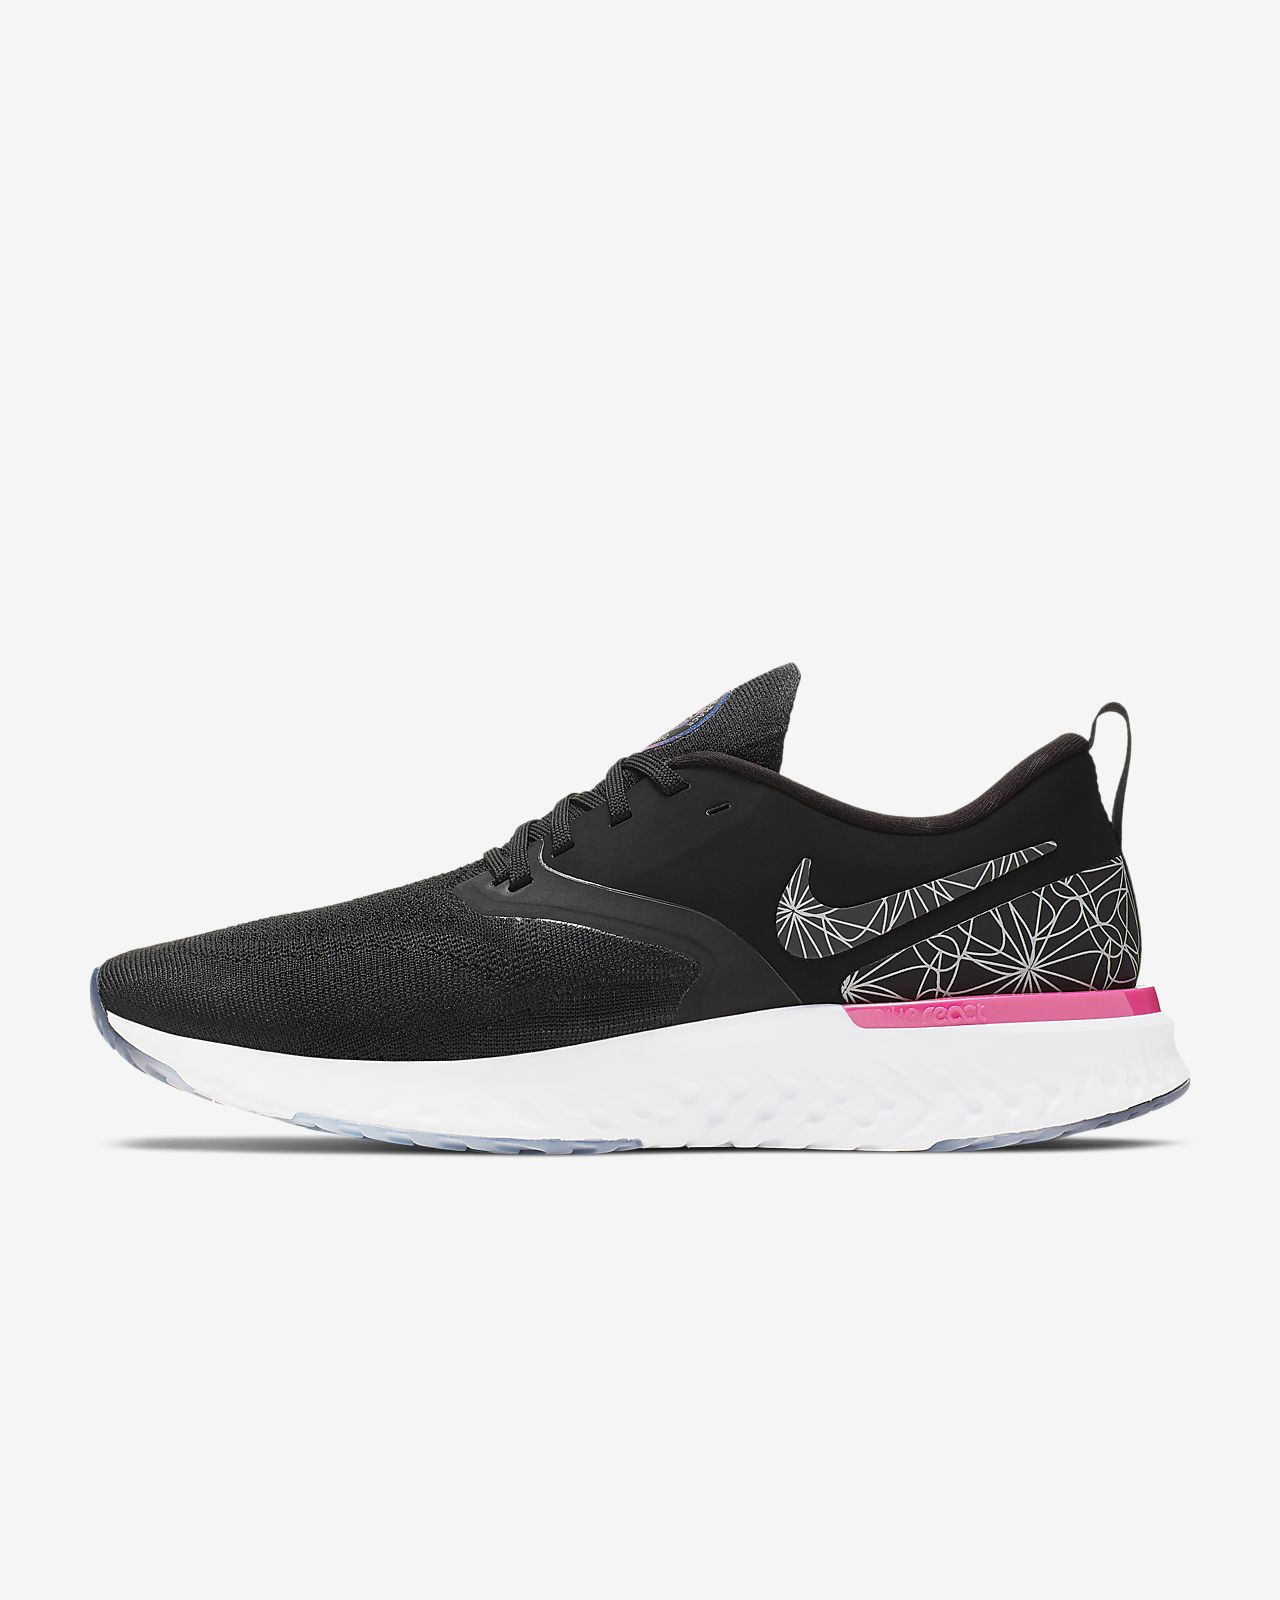 Nike Odyssey React Flyknit 2 Men's Graphic Running Shoe